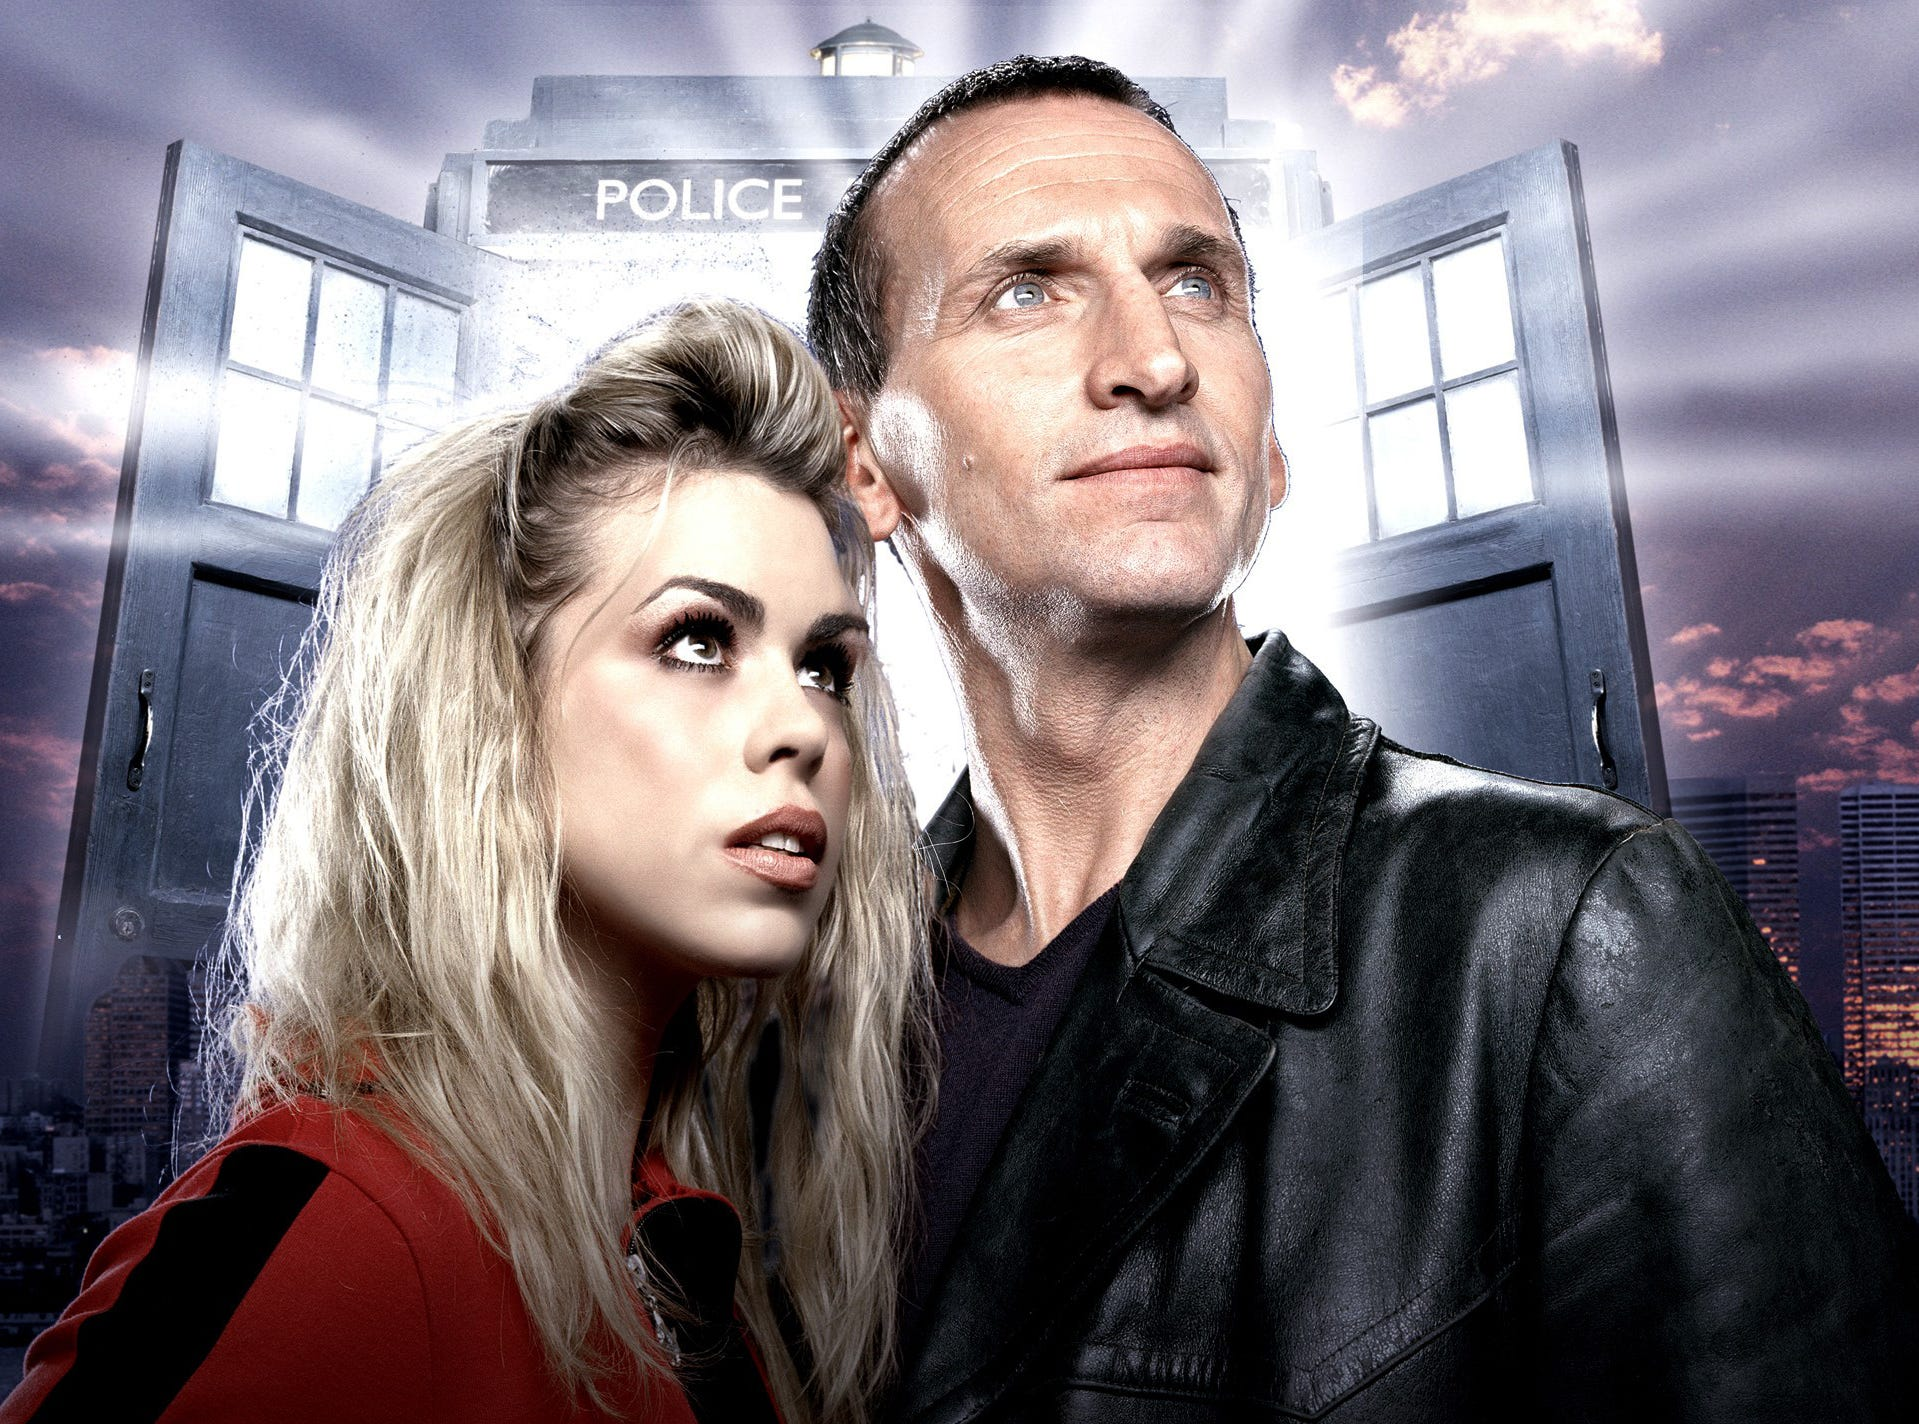 """Billie Piper joined Eccleston as the first companion for the rebooted series. Her character, Rose Tyler, spent two seasons with the show, working with both the Ninth and Tenth Doctor. Piper has spent three seasons on Showtime's """"Penny Dreadful."""""""